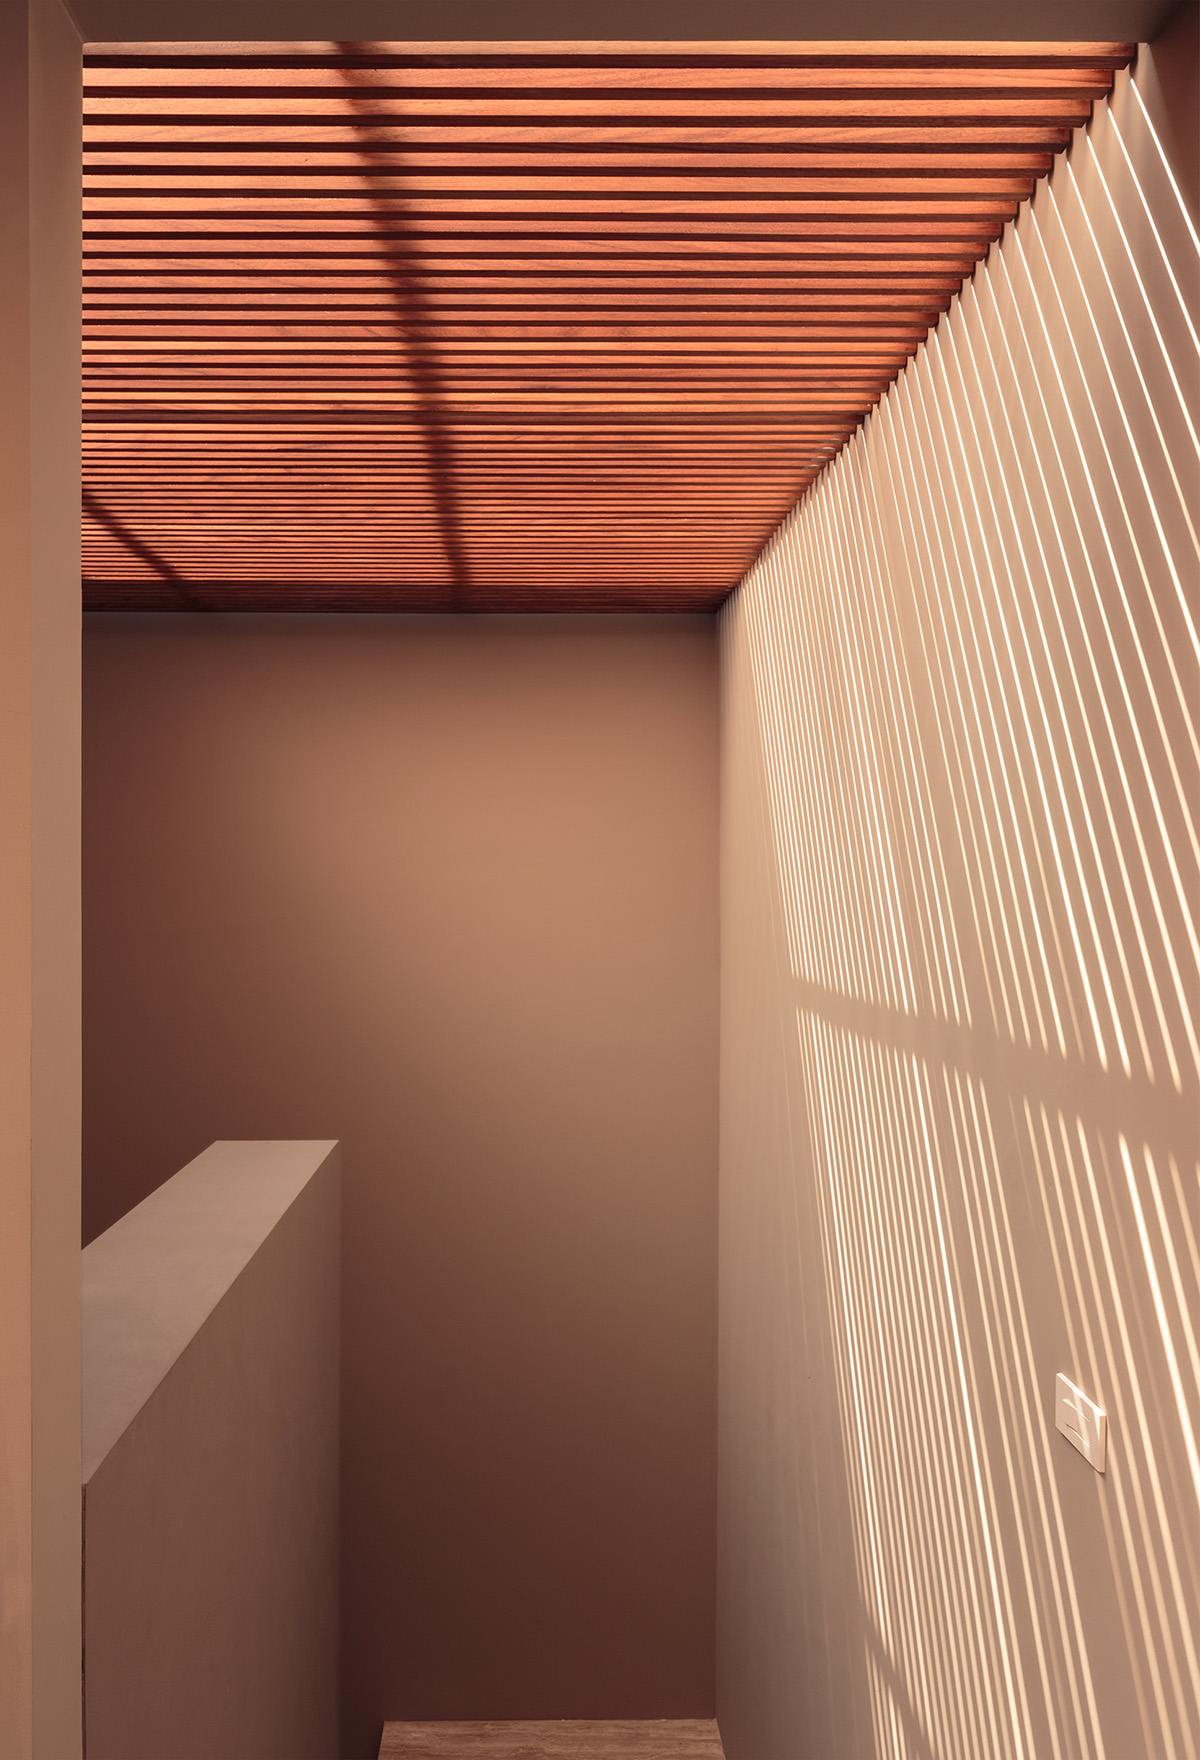 Slatted Stairwell Skylight - An atmospheric approach to modernist architecture in mexico